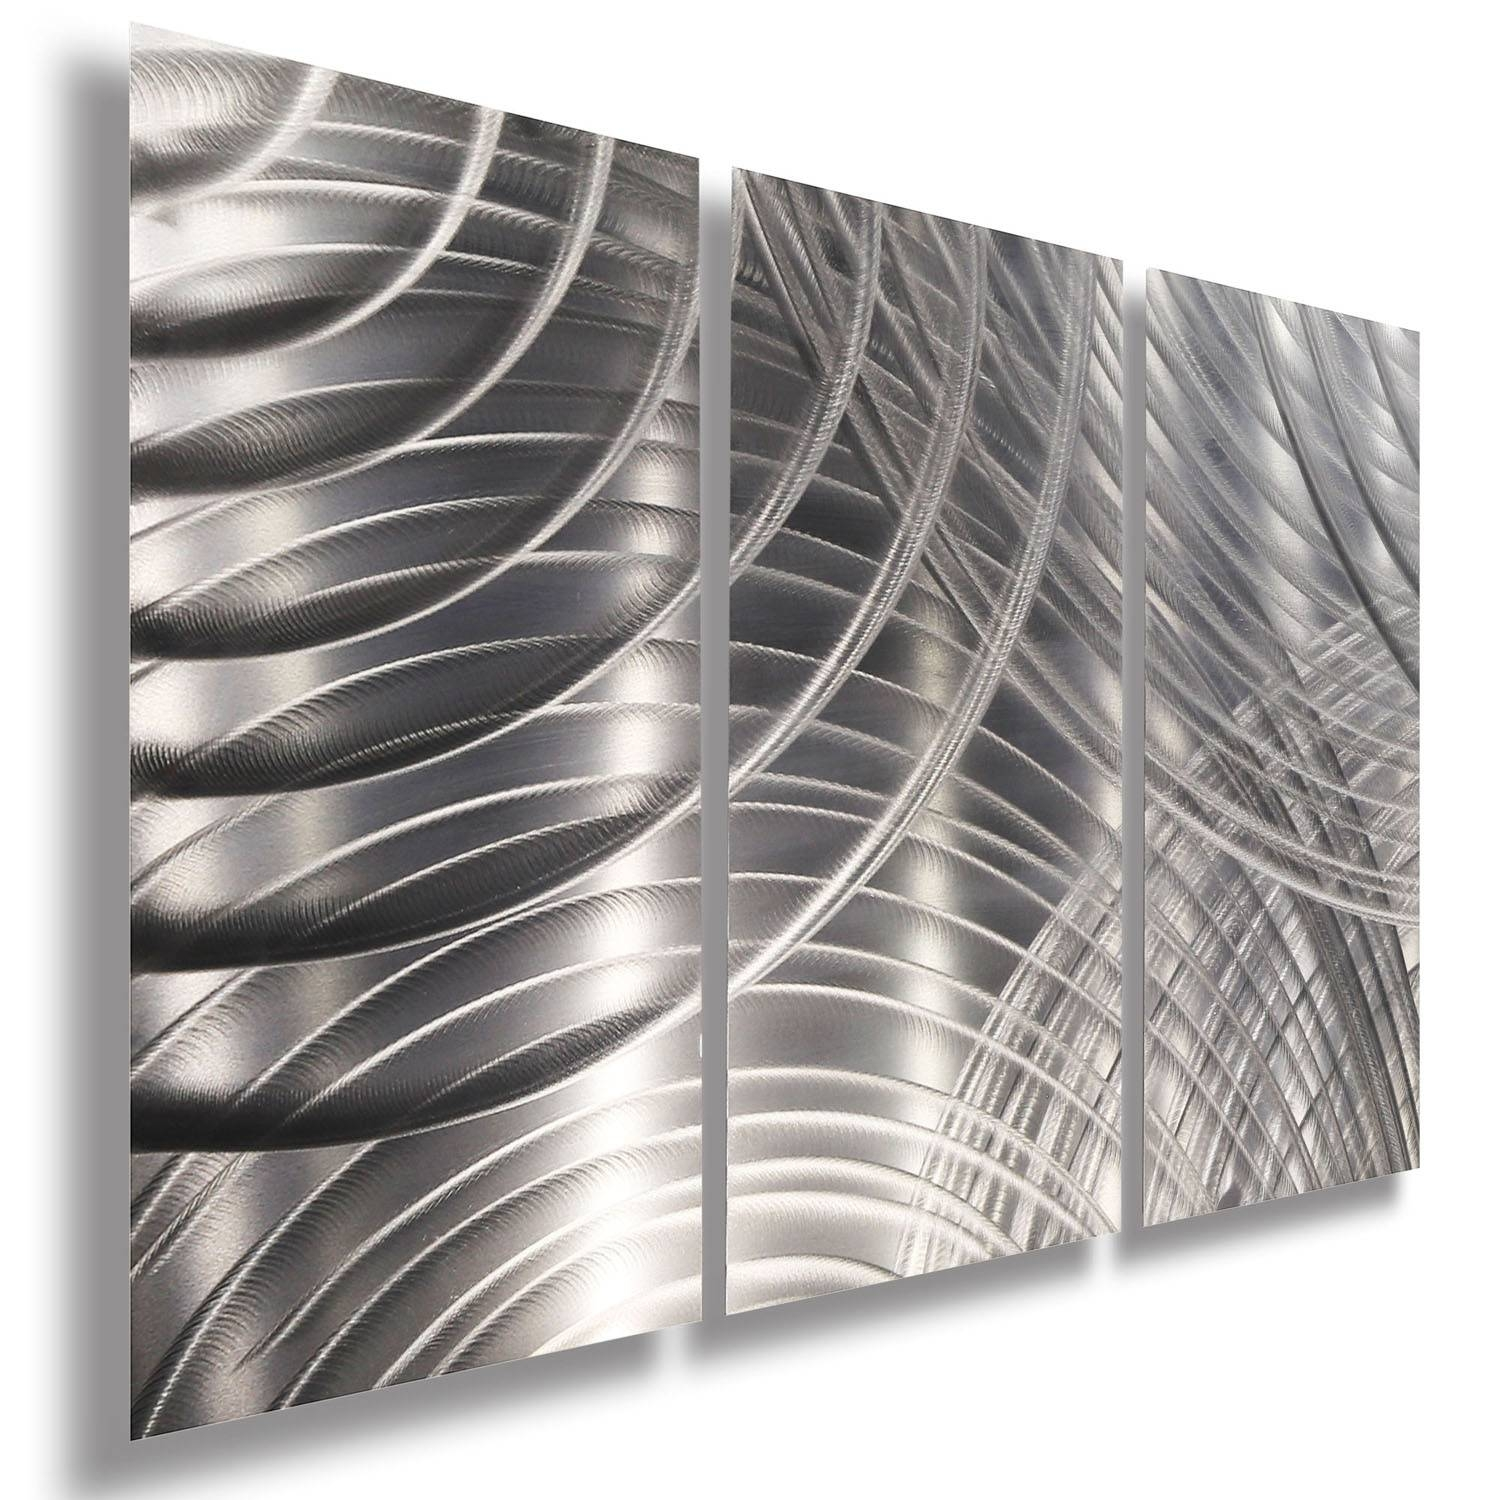 Equinox Ii 3P – All Silver 3 Panel Metal Wall Art Accentjon In Best And Newest Black And Silver Metal Wall Art (View 3 of 20)